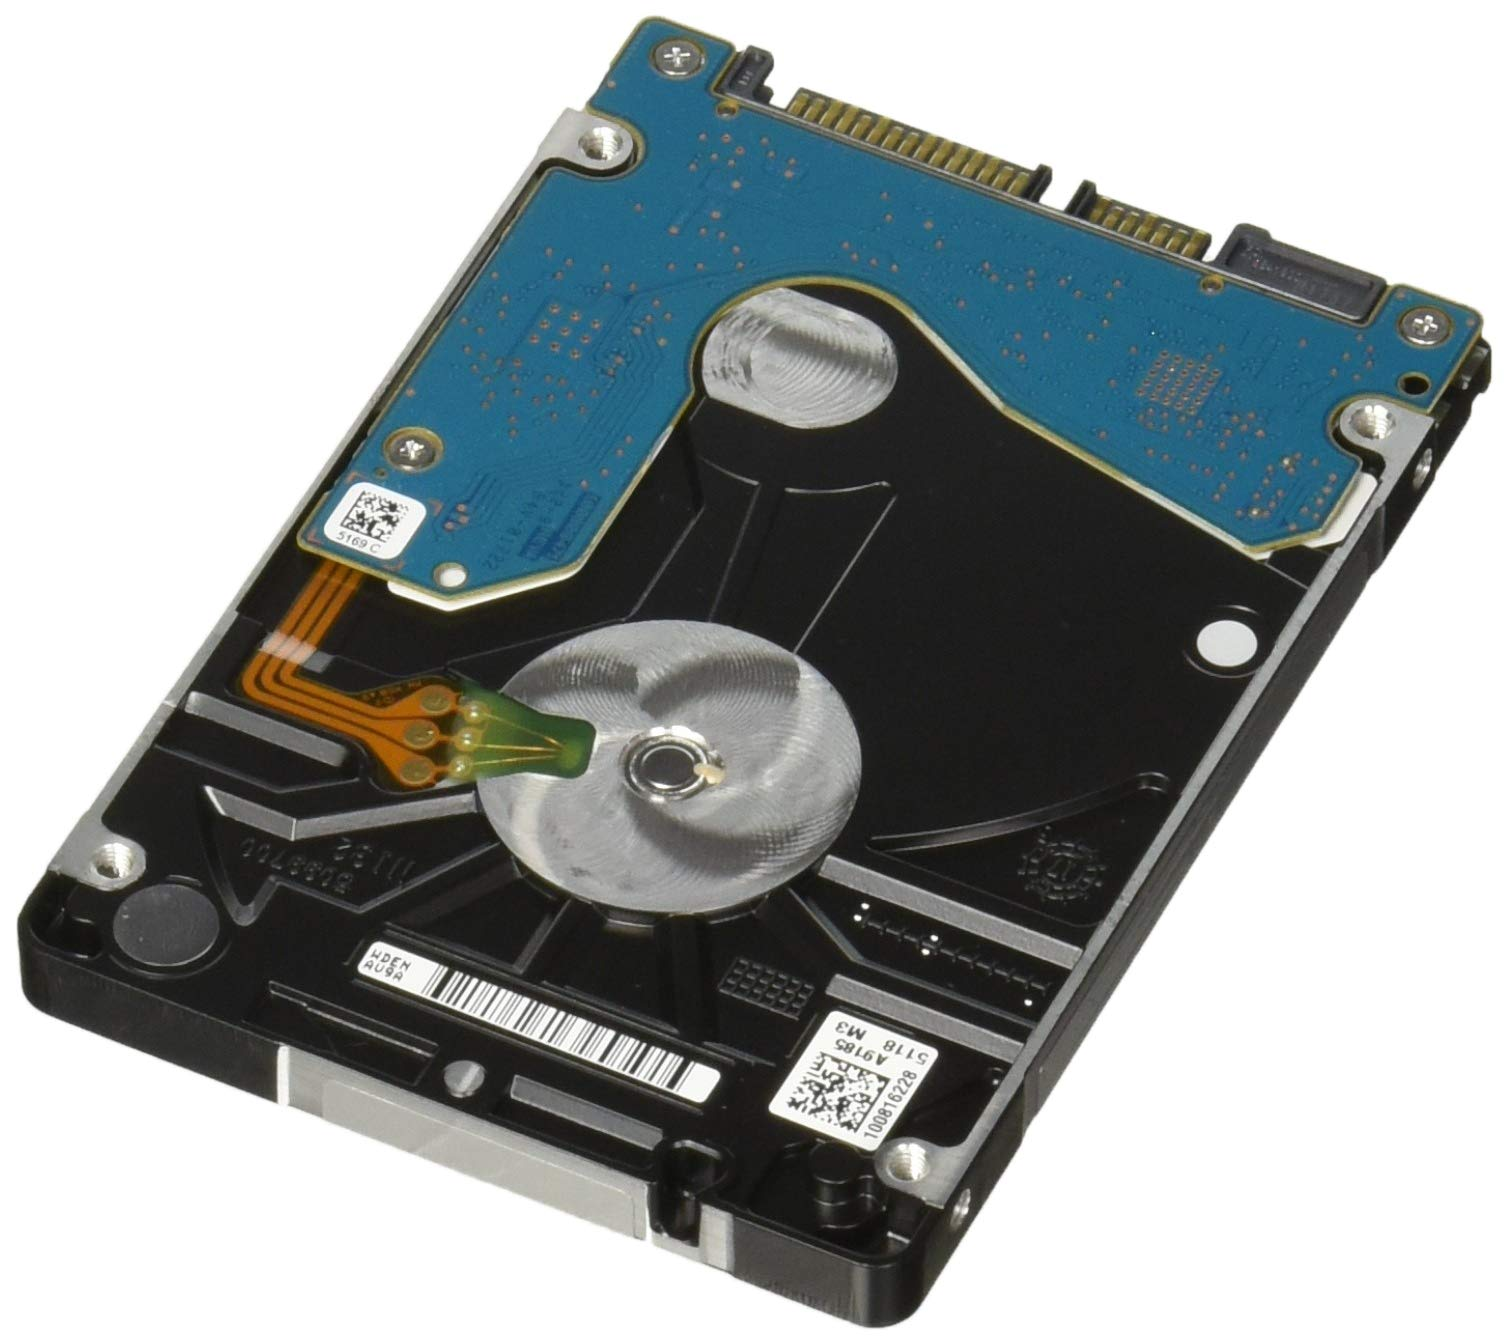 Seagate 1TB Laptop HDD SATA 6Gb/s 128MB Cache 2.5-Inch Internal Hard Drive (ST1000LM035) by Seagate